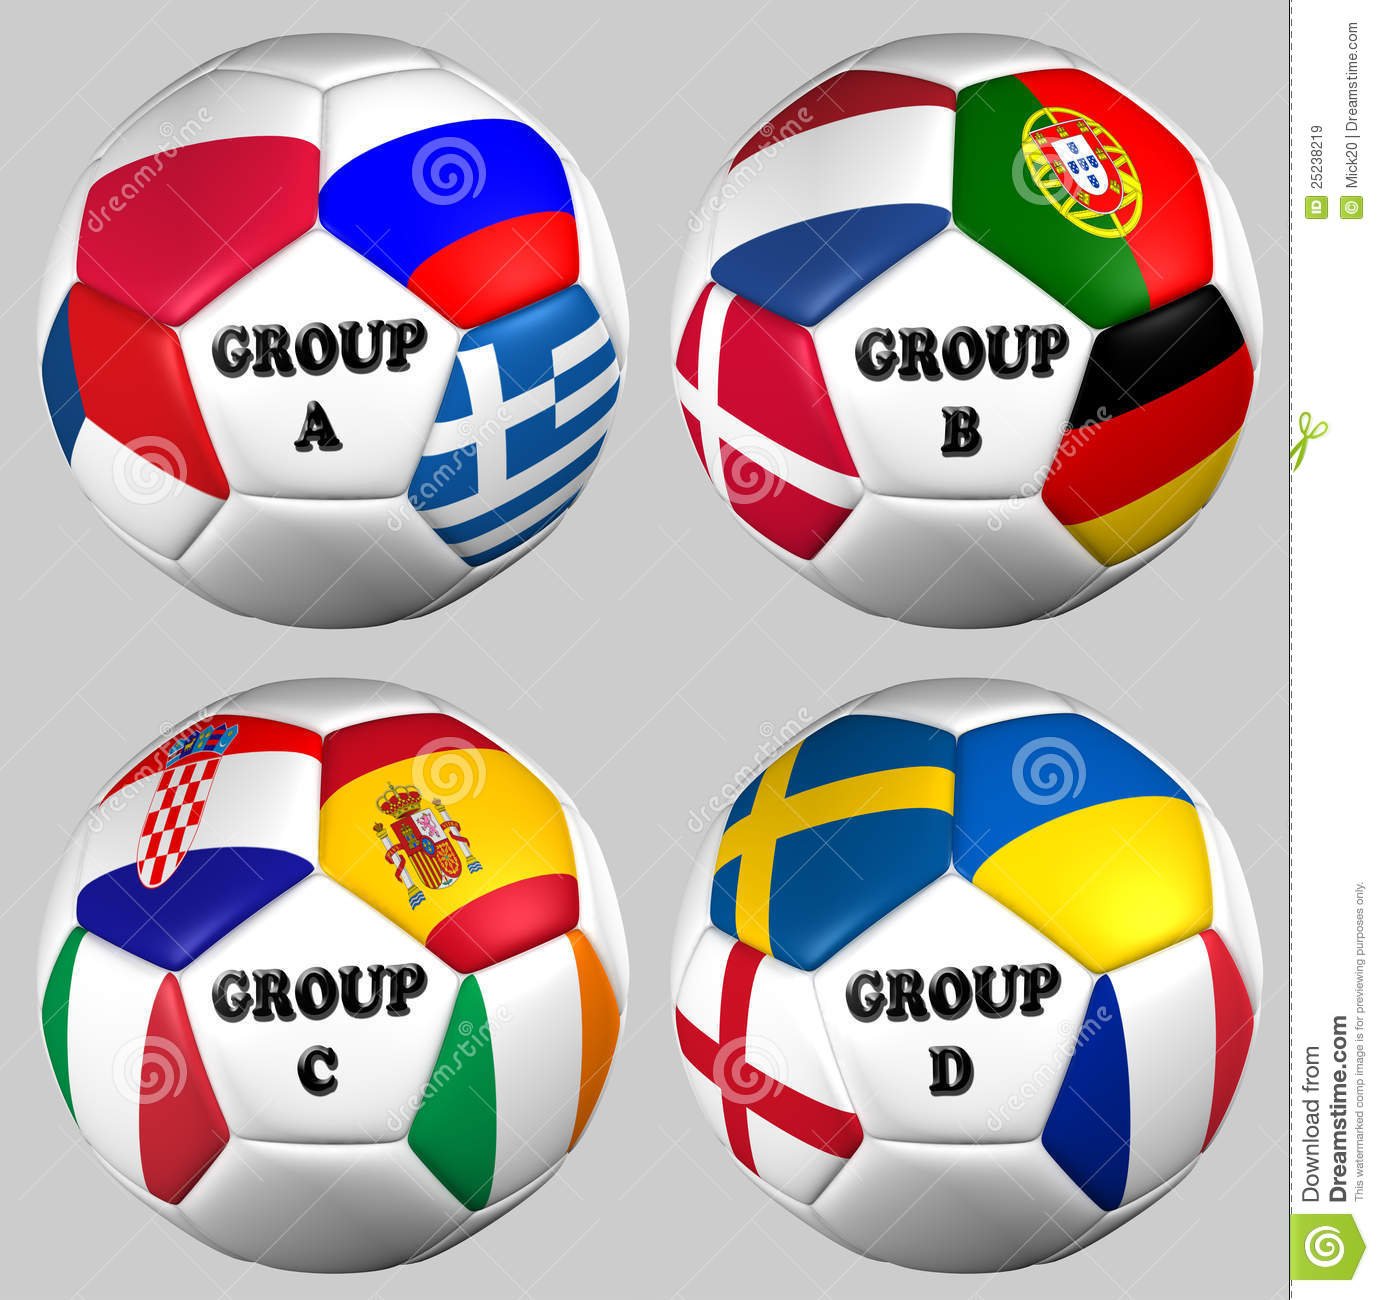 Balls flags euro 2012 groups royalty free stock images for Euro 2012 groupe